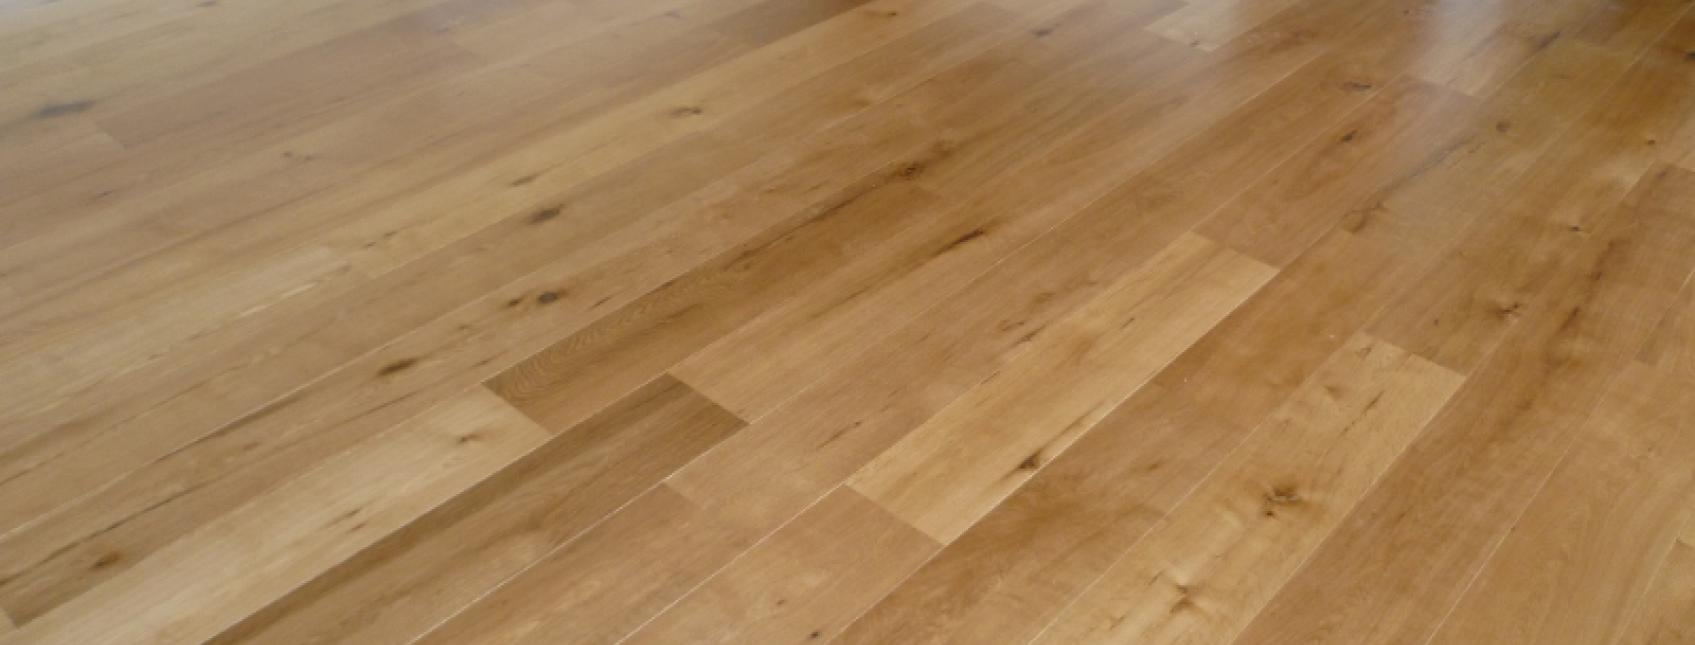 Clear Satin finish on engineered oak